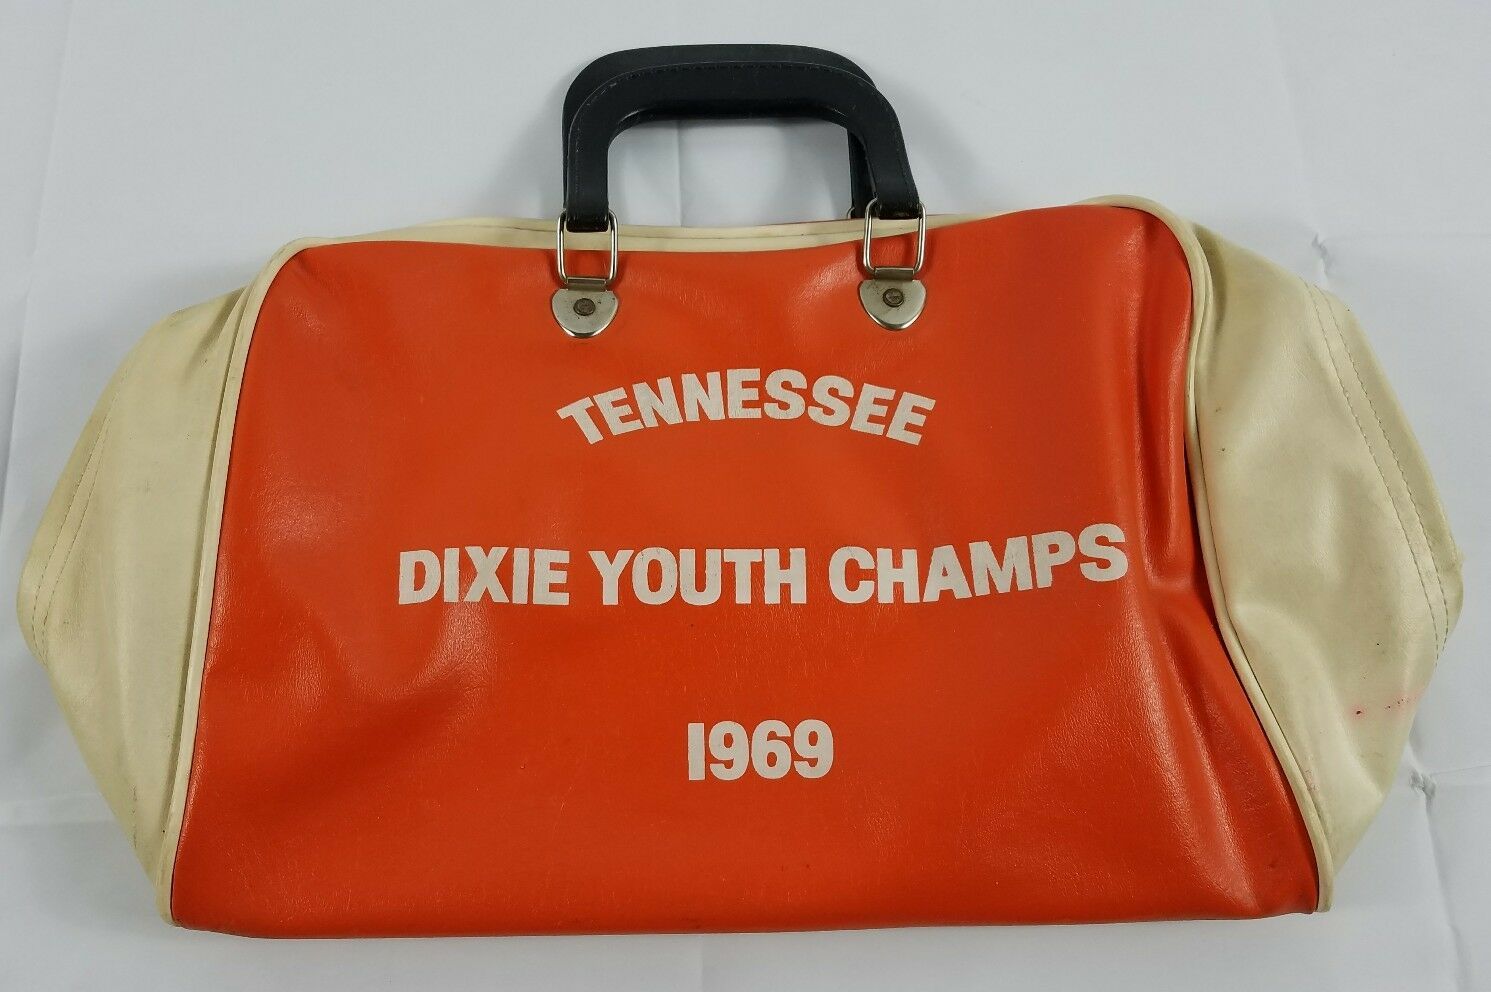 Vintage Tennessee Dixie Youth Champs 1969 Bowling Ball Duffel Bag Tennessee USA